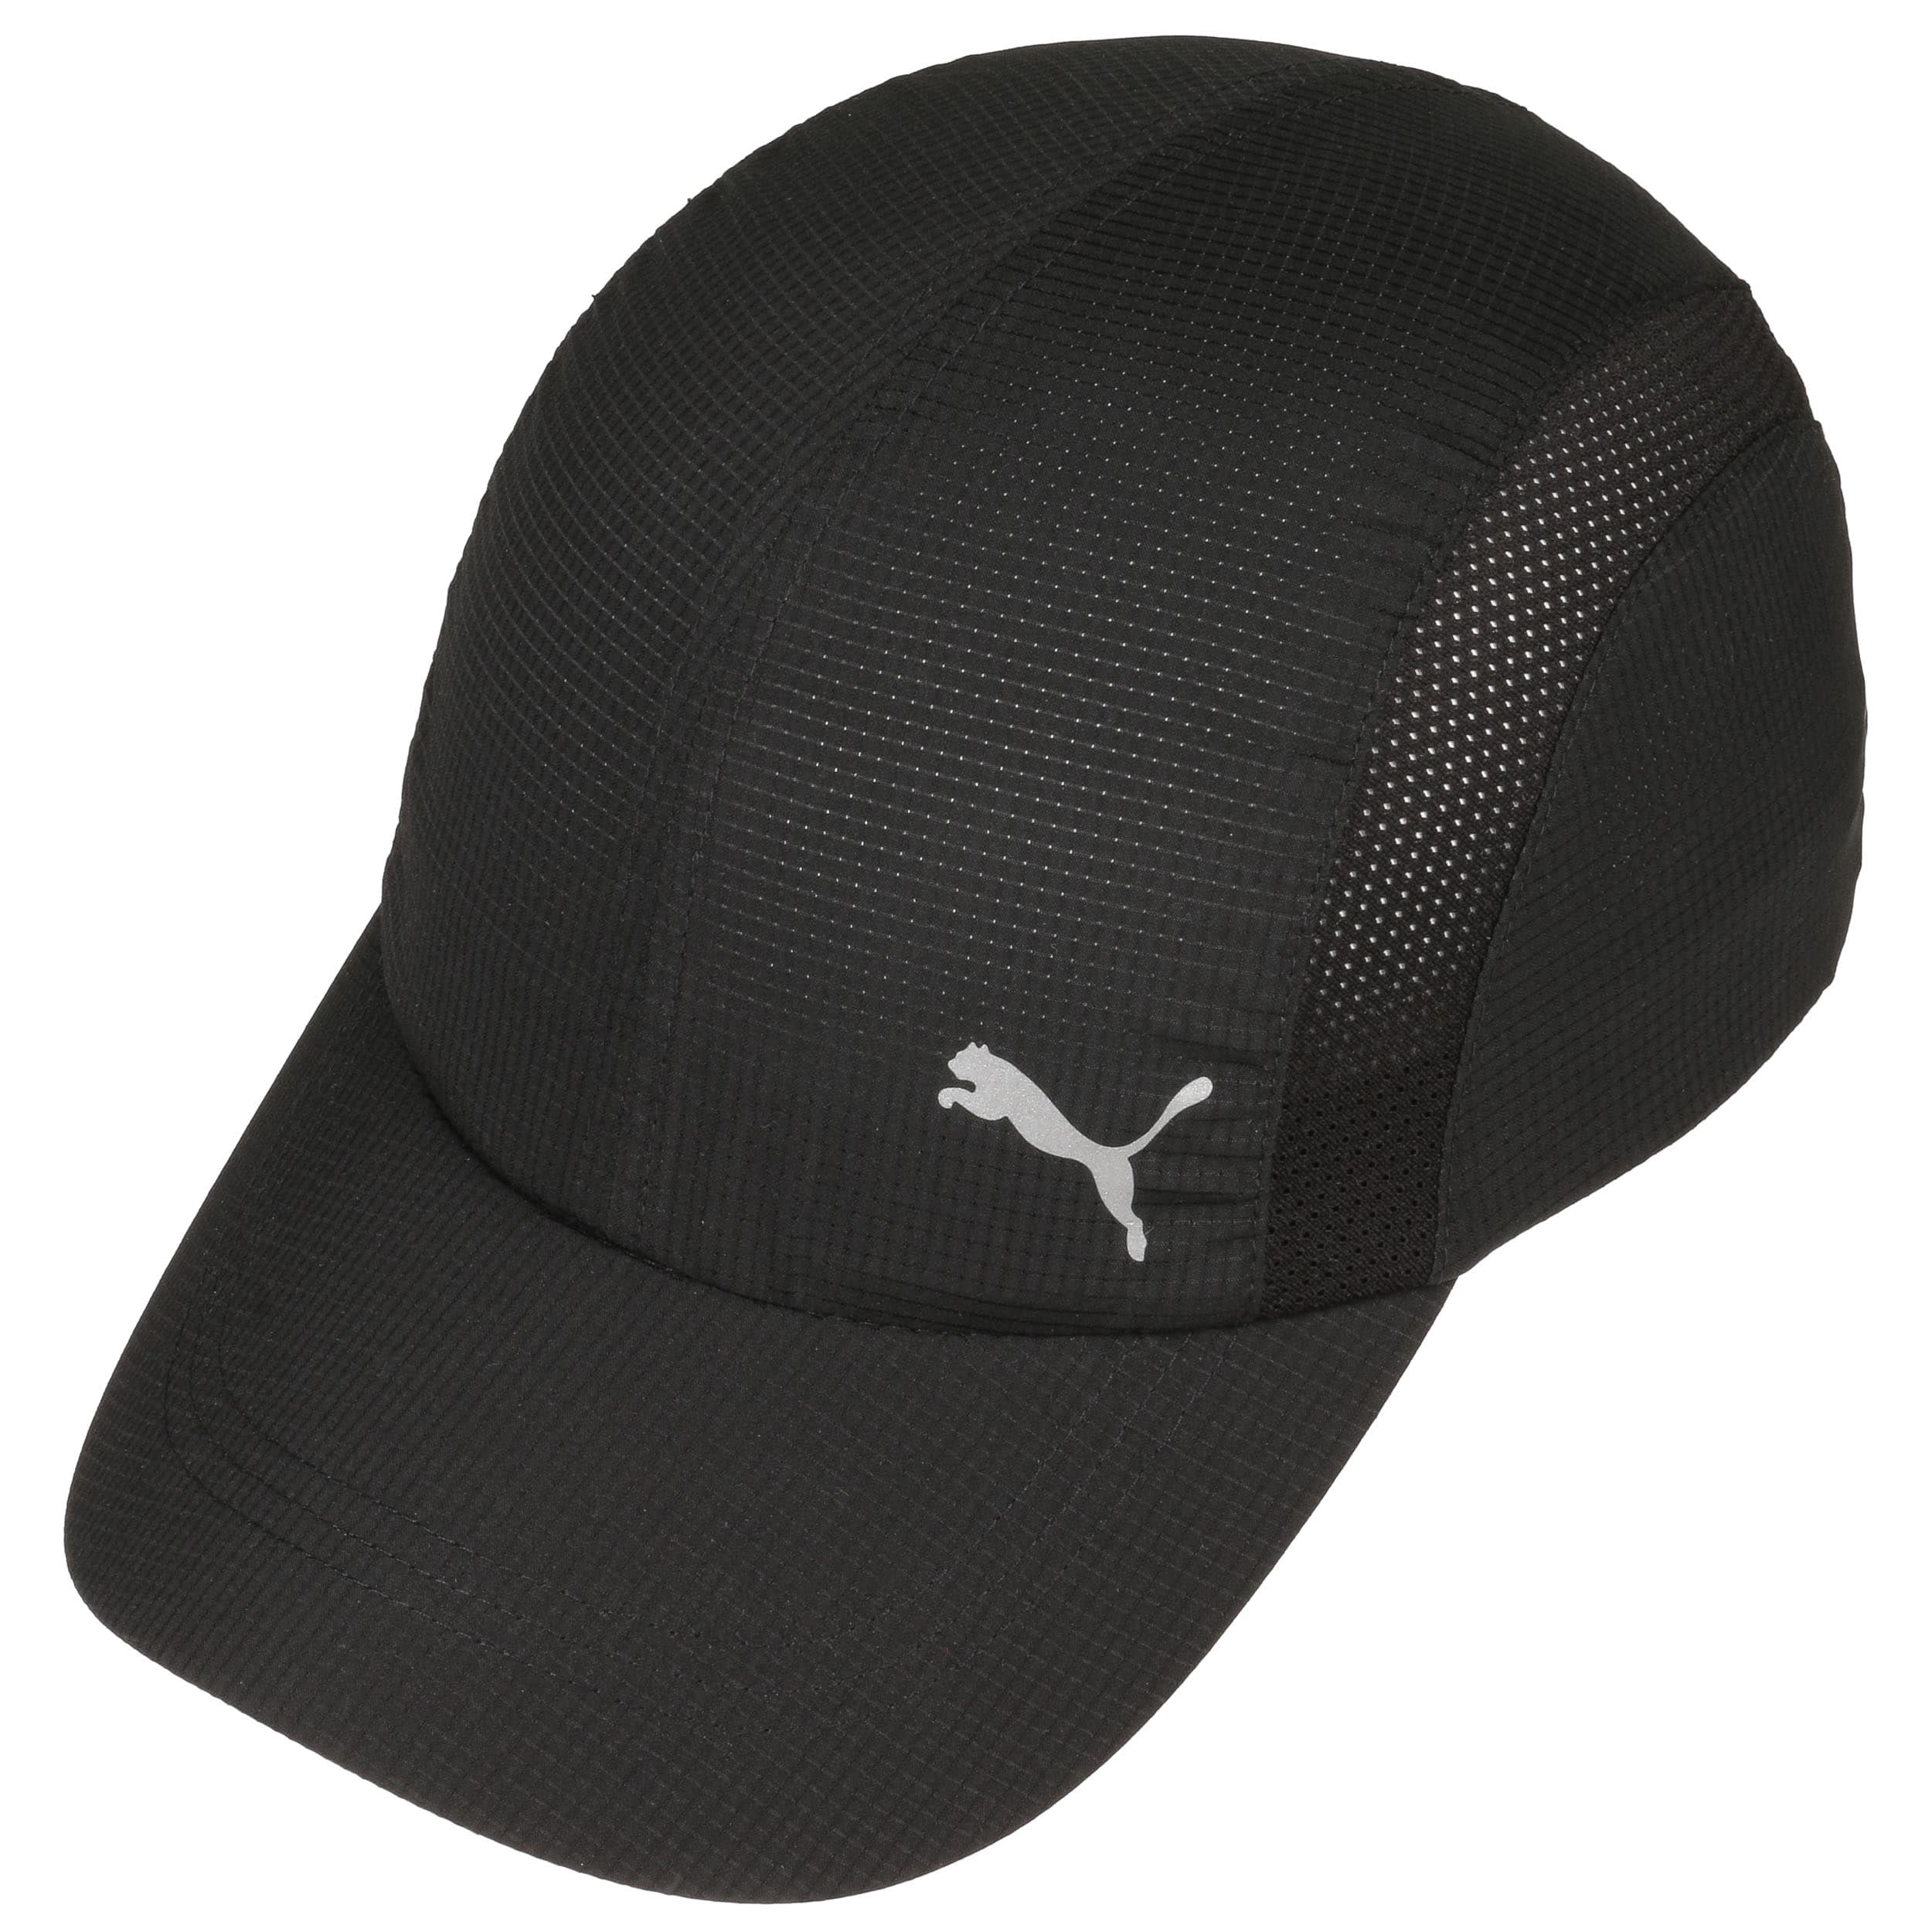 Performance Running Cap by PUMA, GBP 18,95 --> Hats, caps ...